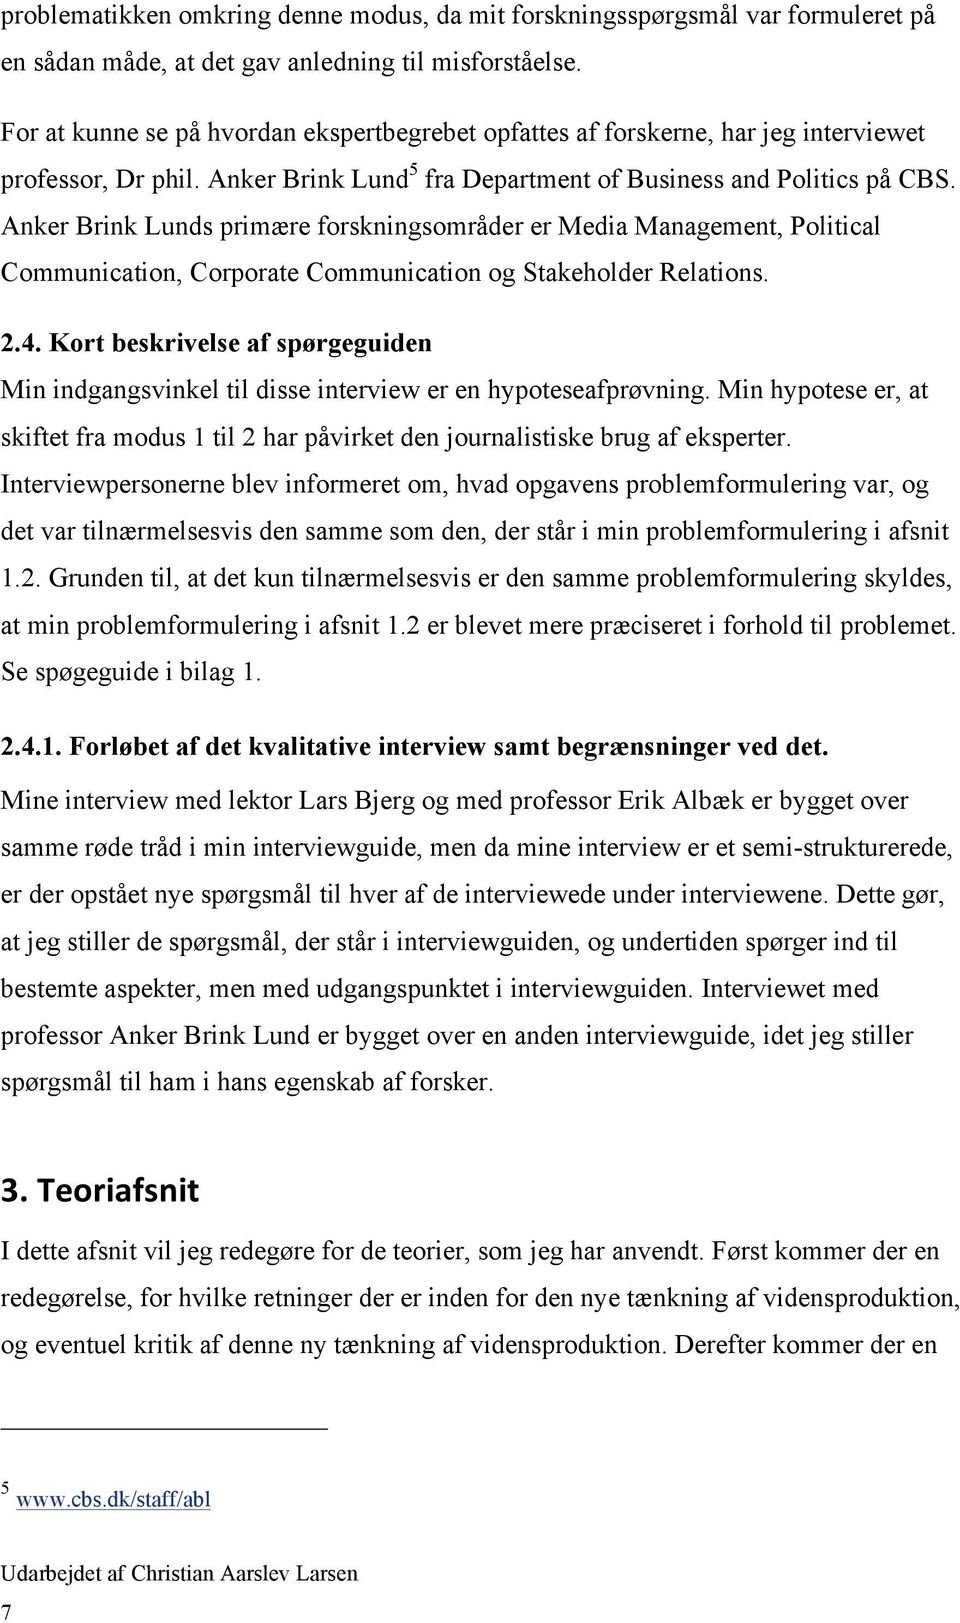 Anker Brink Lunds primære forskningsområder er Media Management, Political Communication, Corporate Communication og Stakeholder Relations. 2.4.